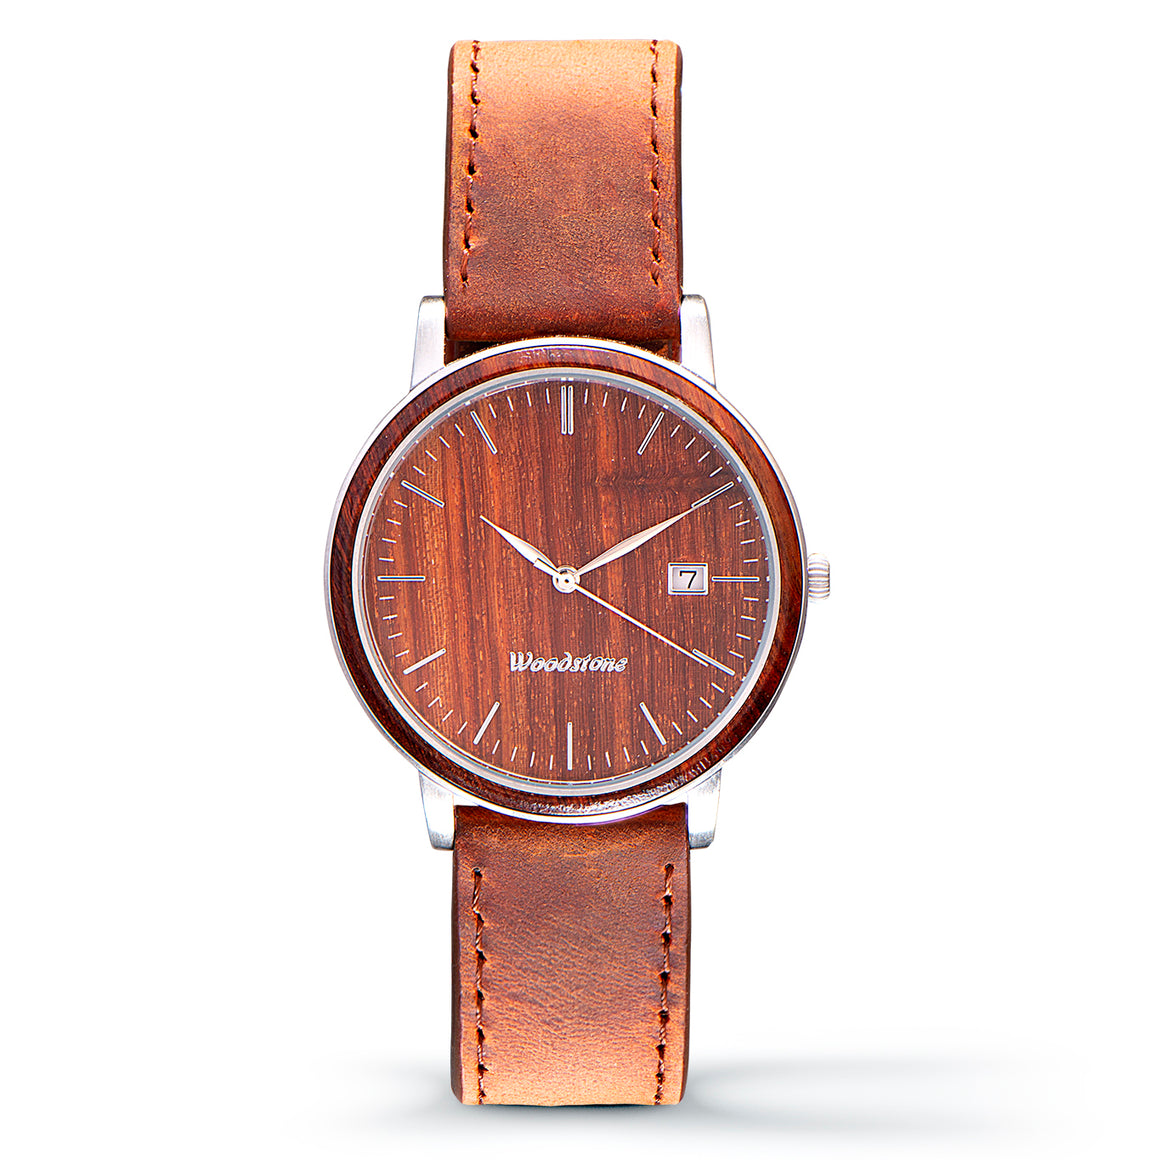 Florence rose wood watch silver